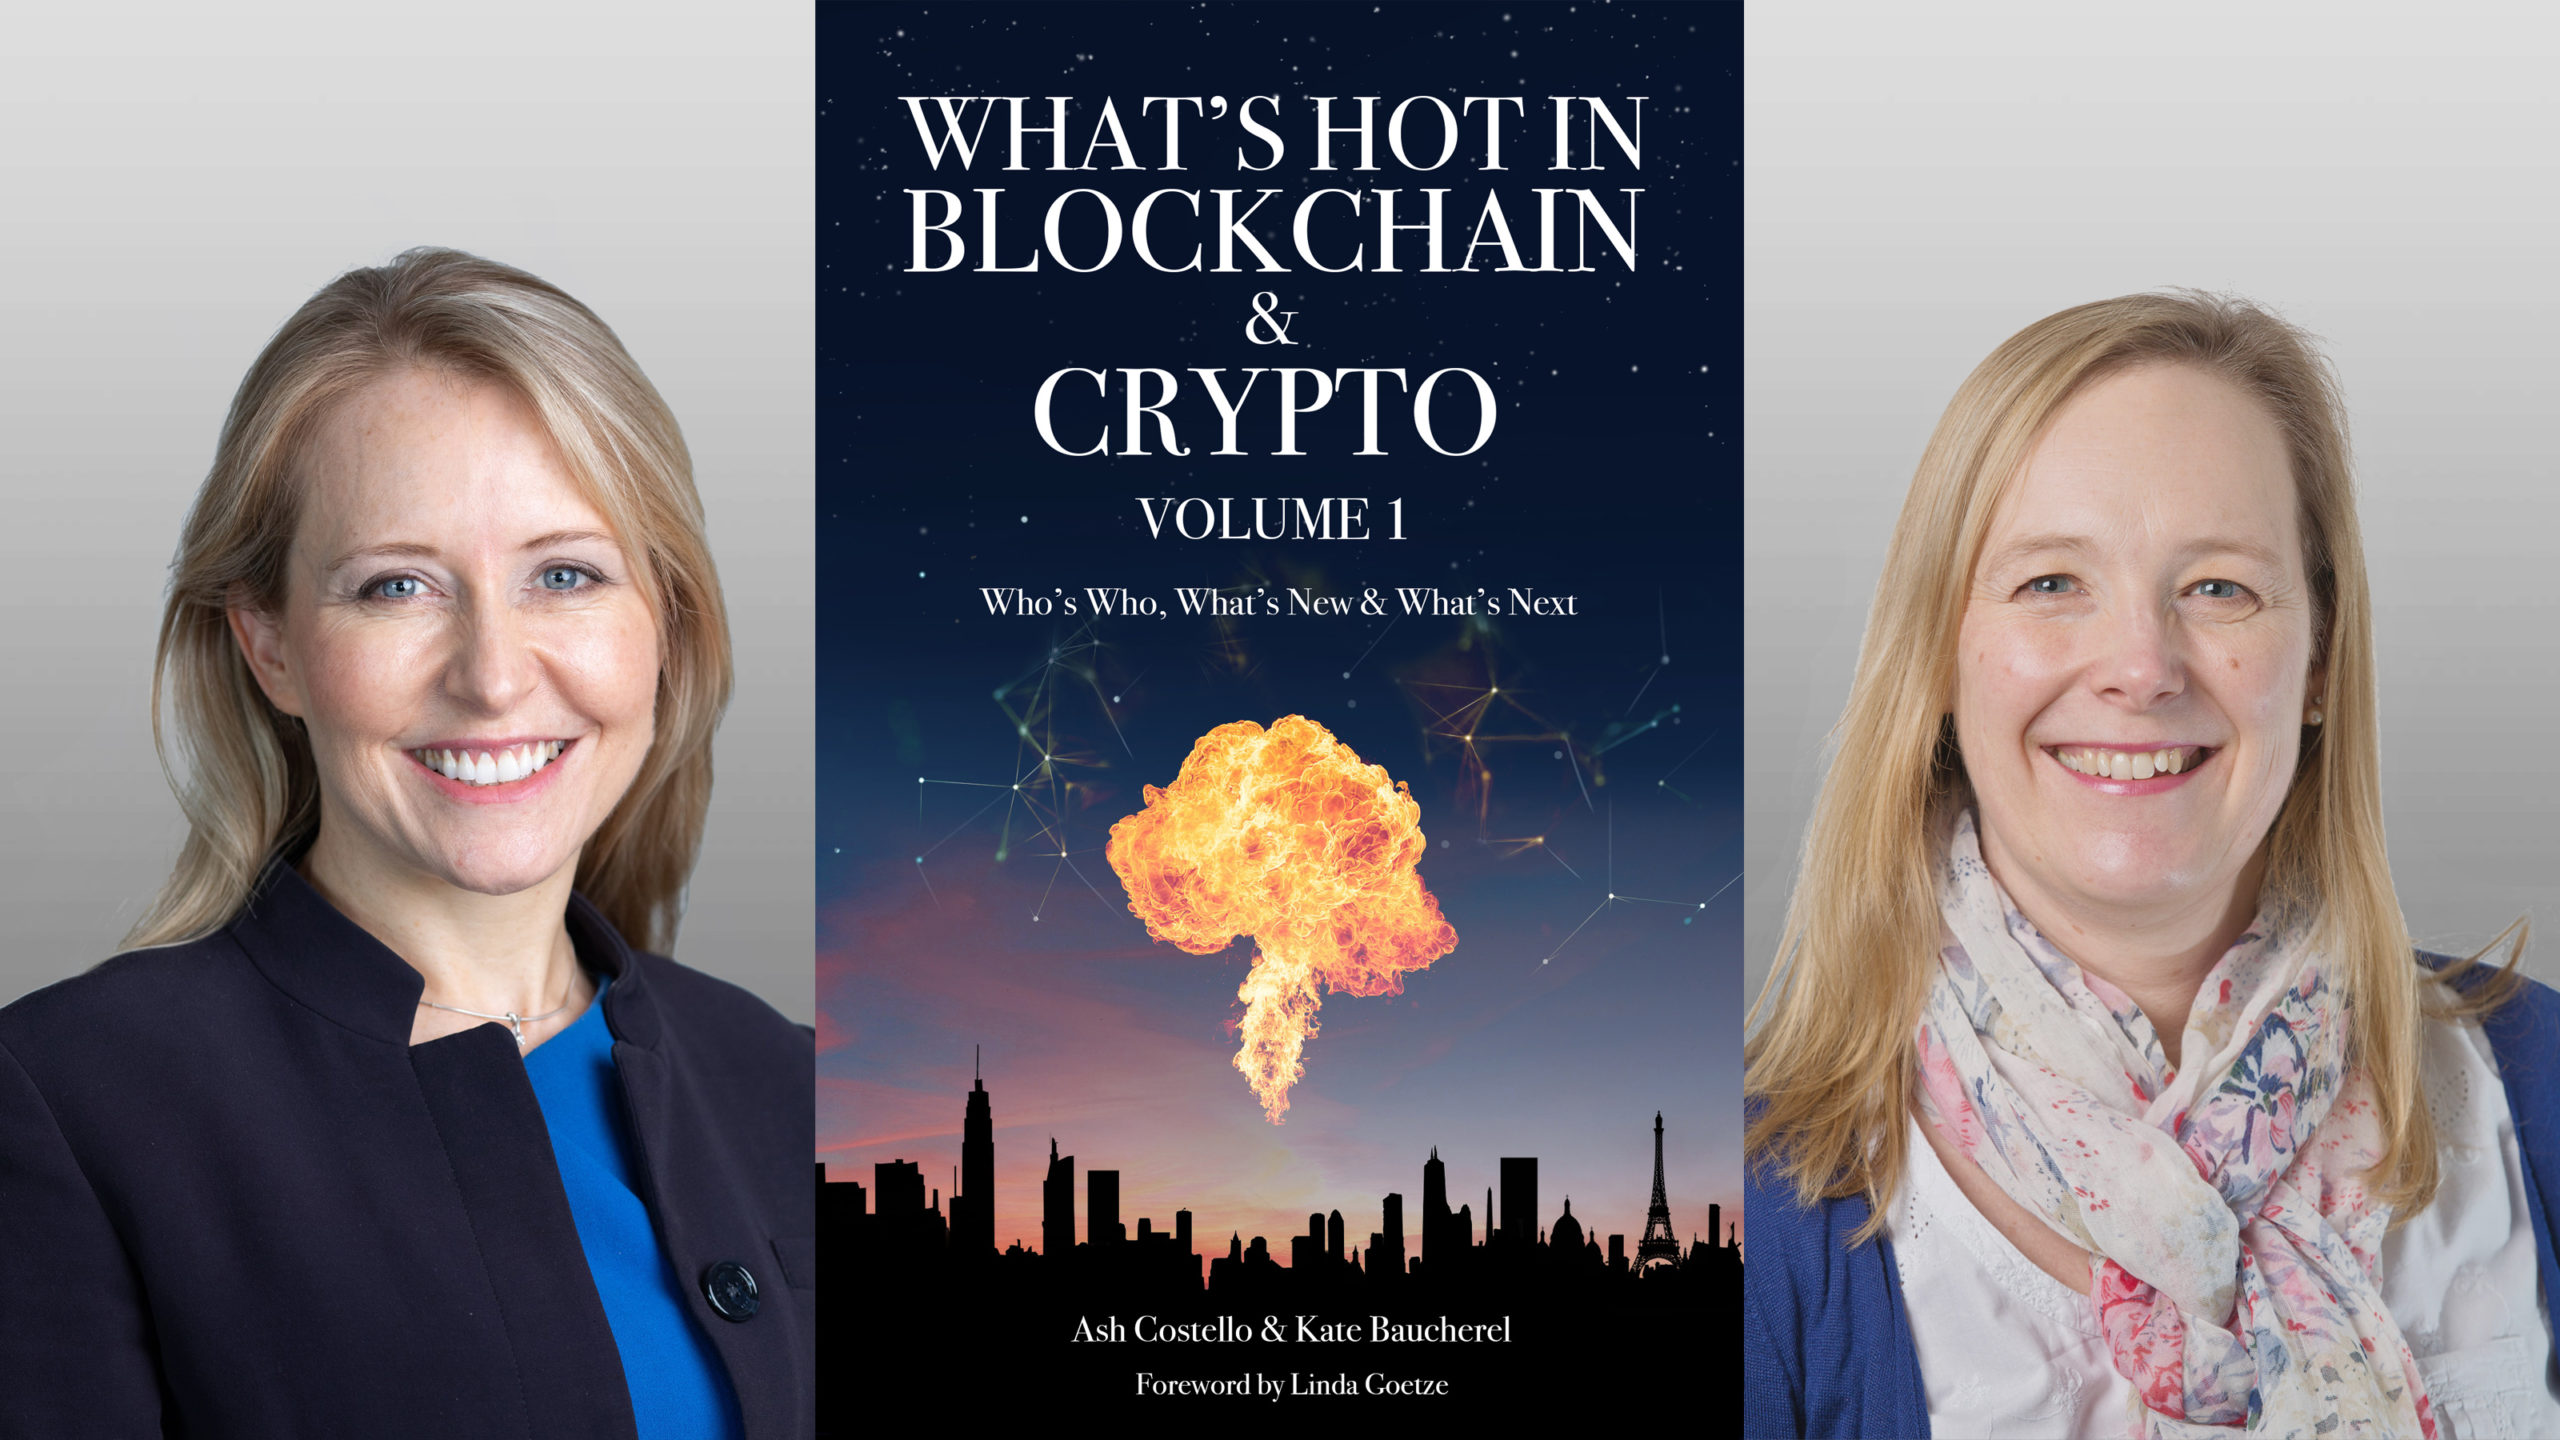 Ash Costello and Kate Baucherel, authors of What's Hot in Blockchain & Crypto